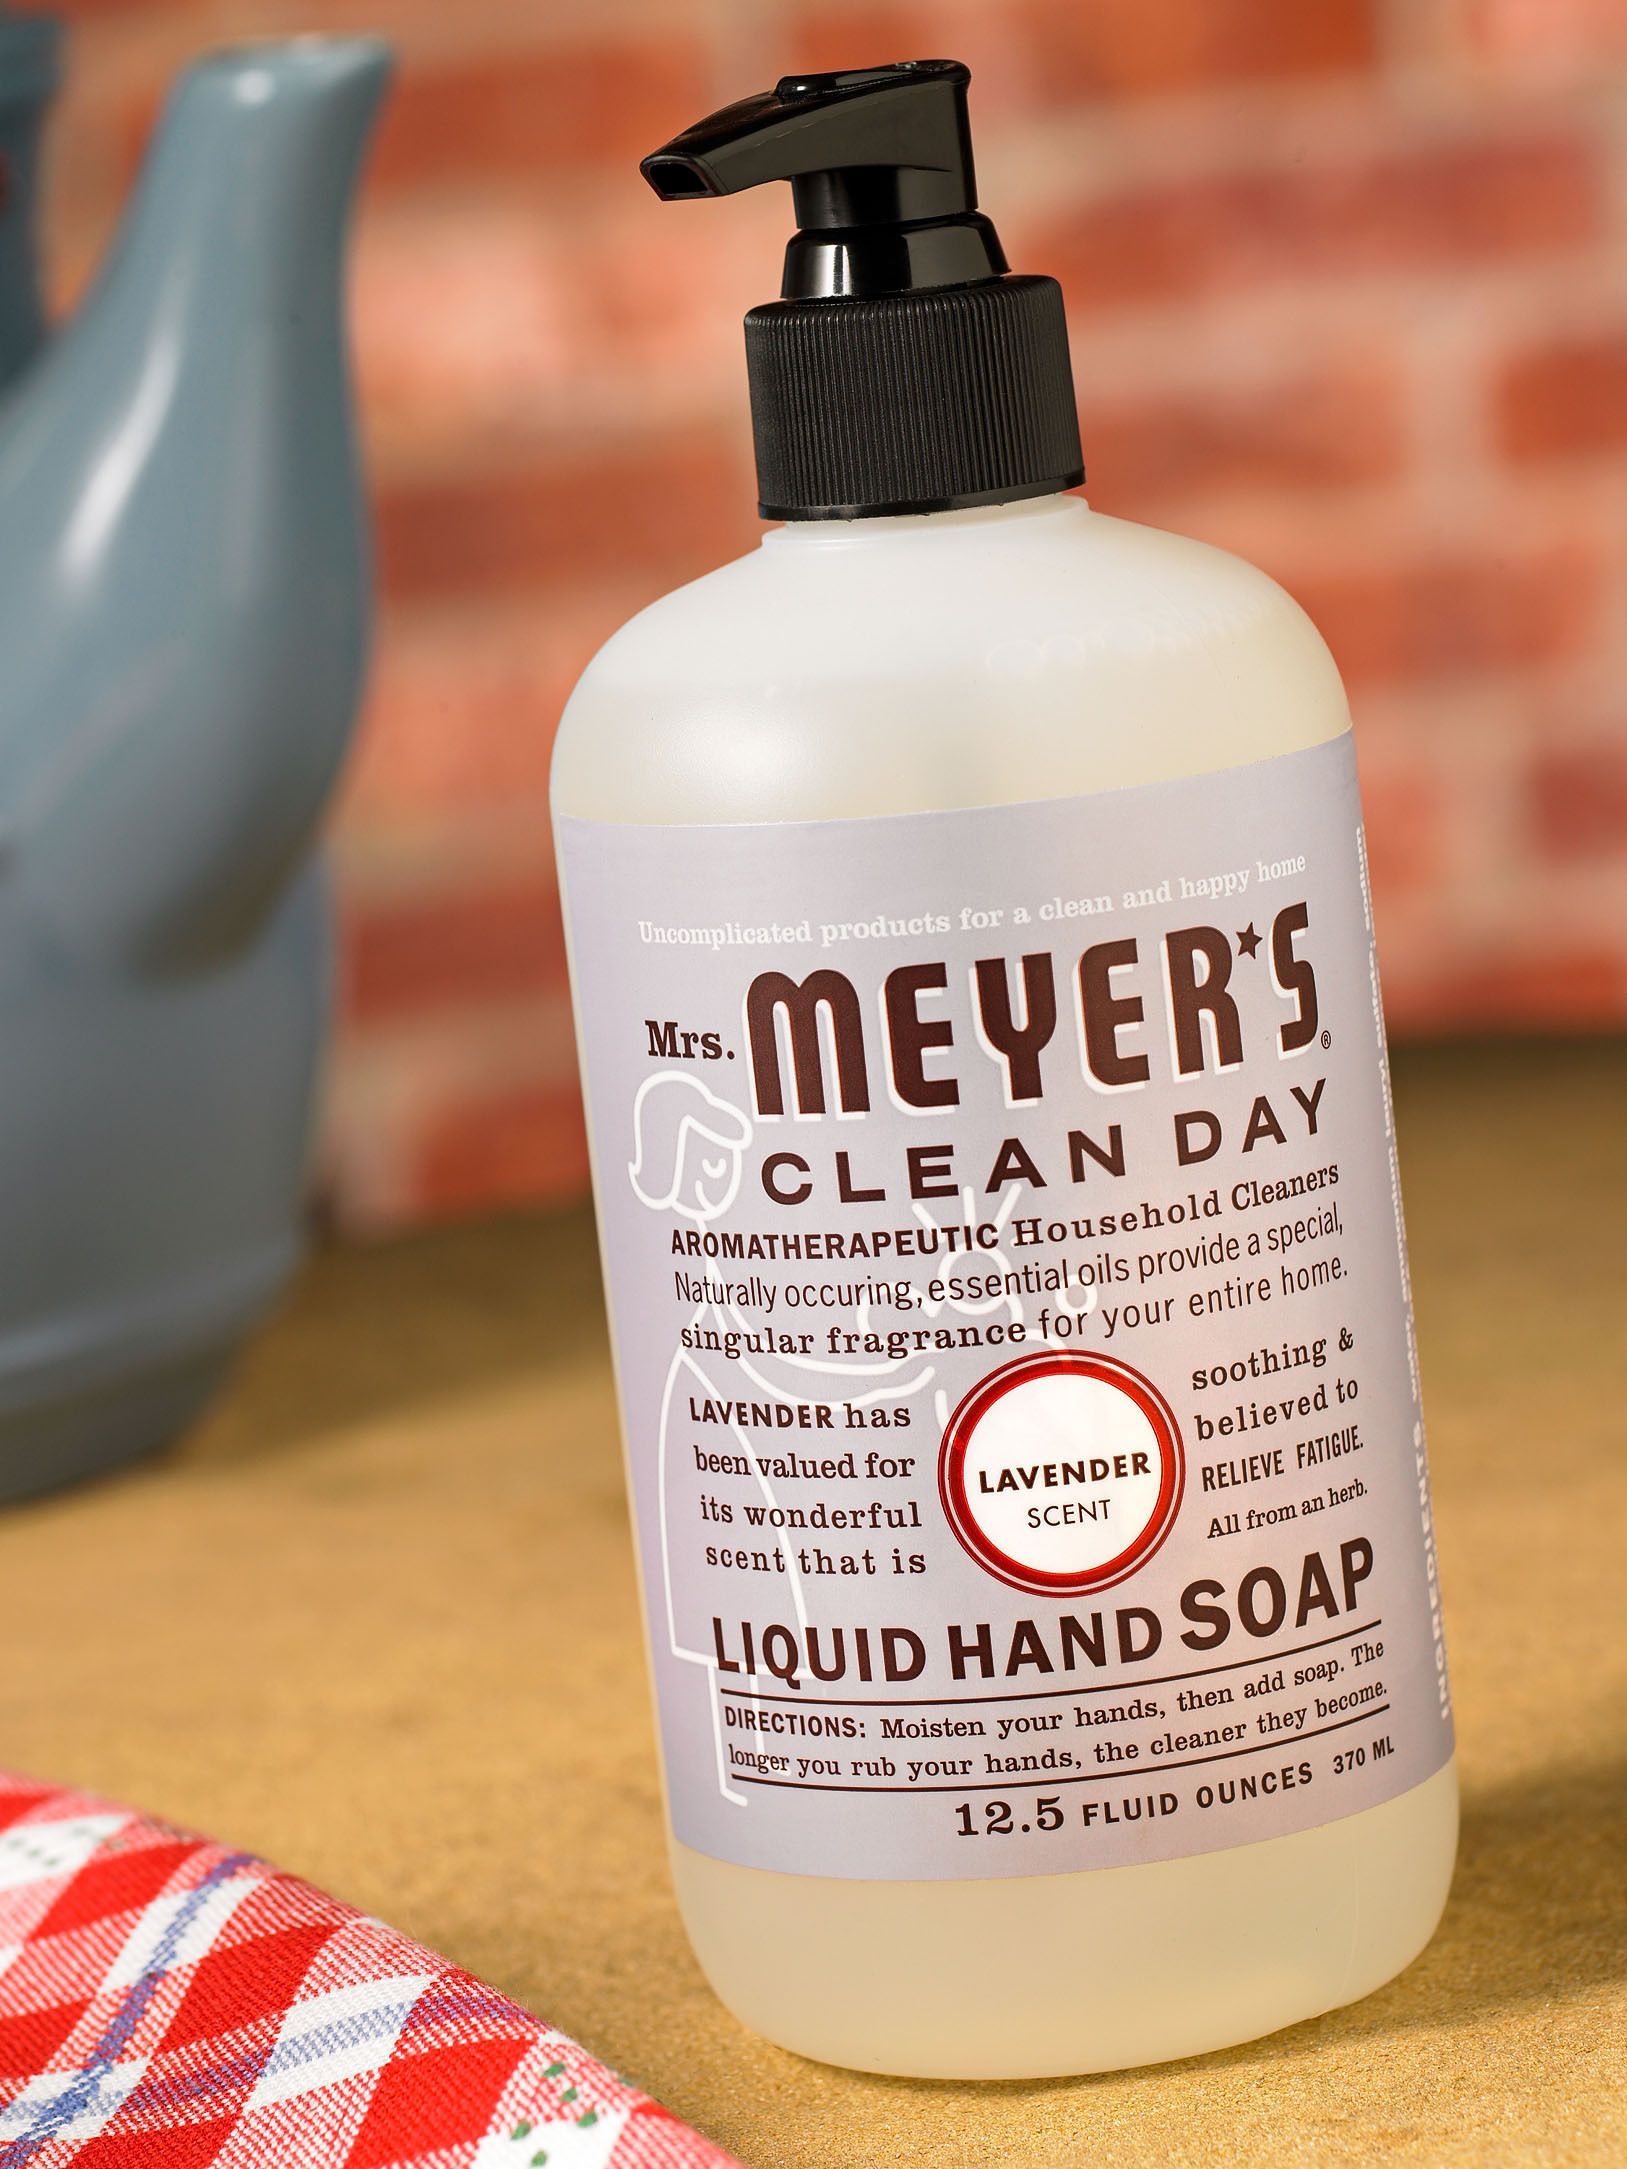 Mrs. Meyers hand soap